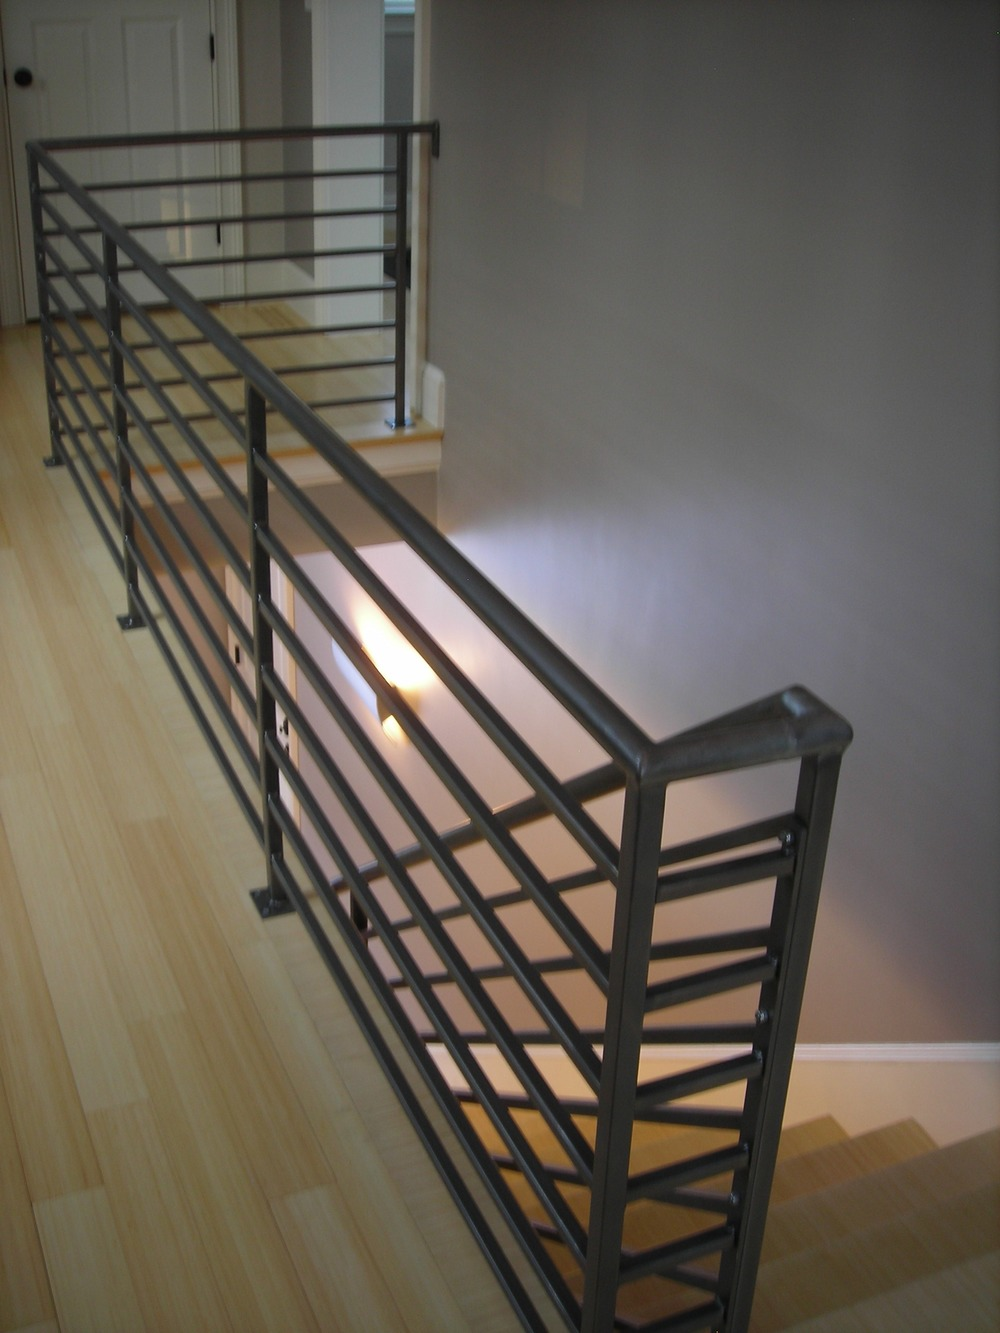 Custom Horizontal-Bar Steel Railing, with a Clear Coat Finish.